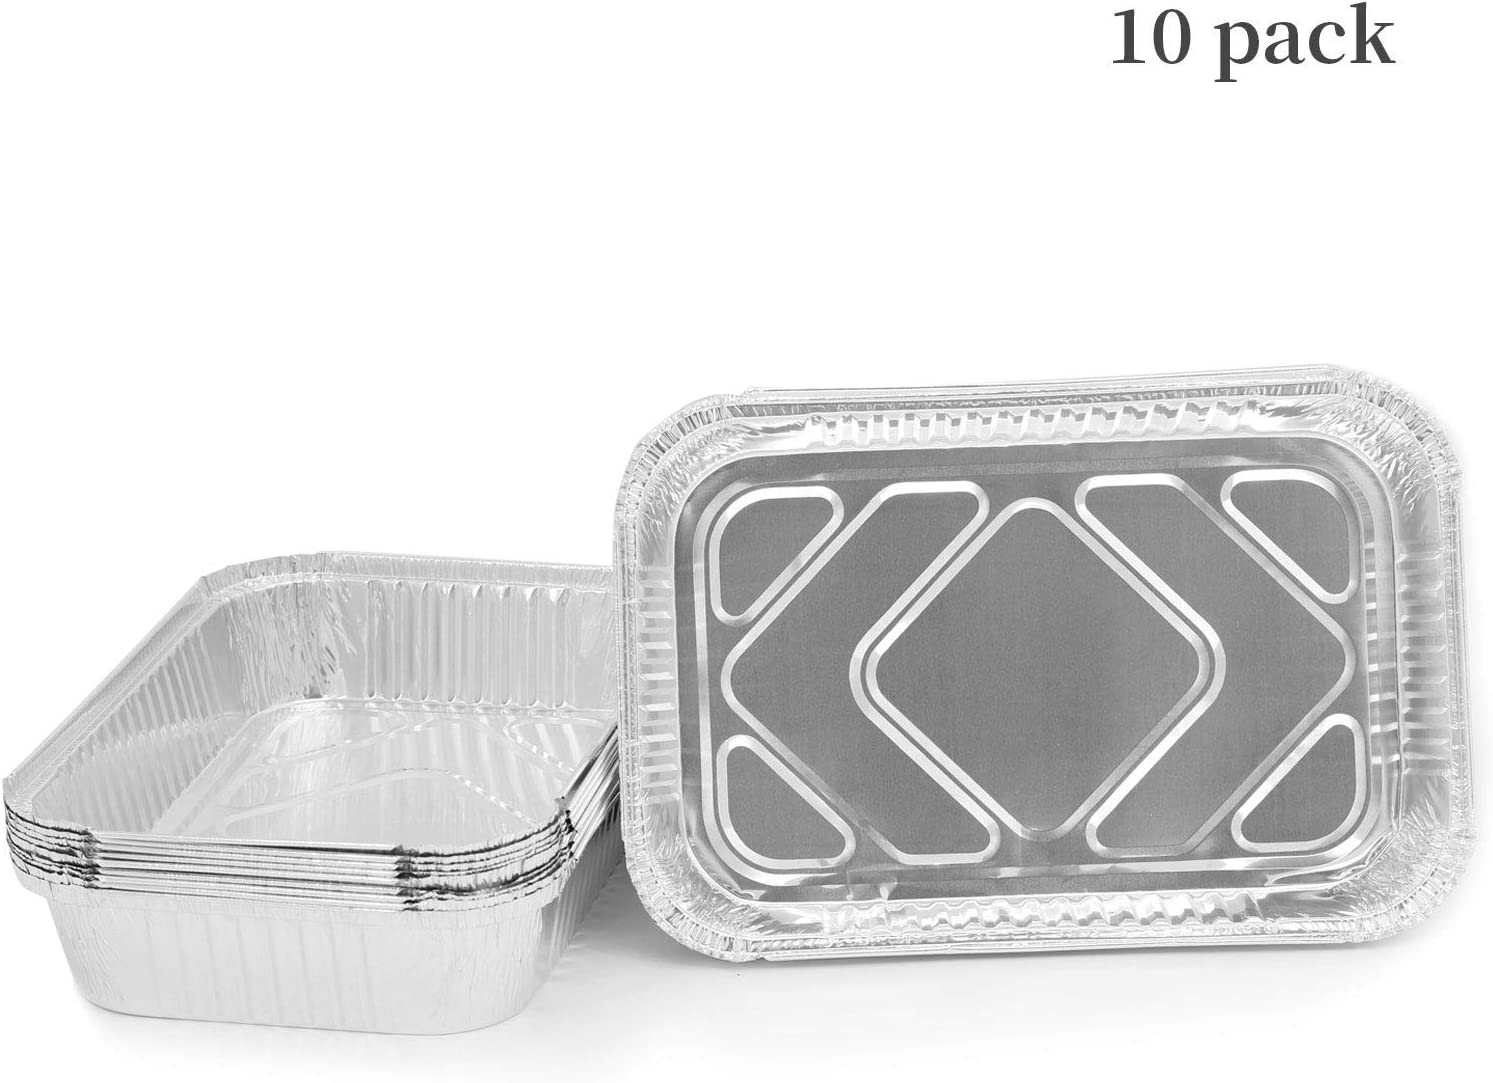 """Aluminum Pans 12.15"""" x 8.2"""" Disposable Foil Pans Large Capacity of 5 lb Heavy Duty Reuseable Durable Grill Trays Loaf Pans Great for Turkey, Baking, Roasting & Cooking (10 Pack)"""